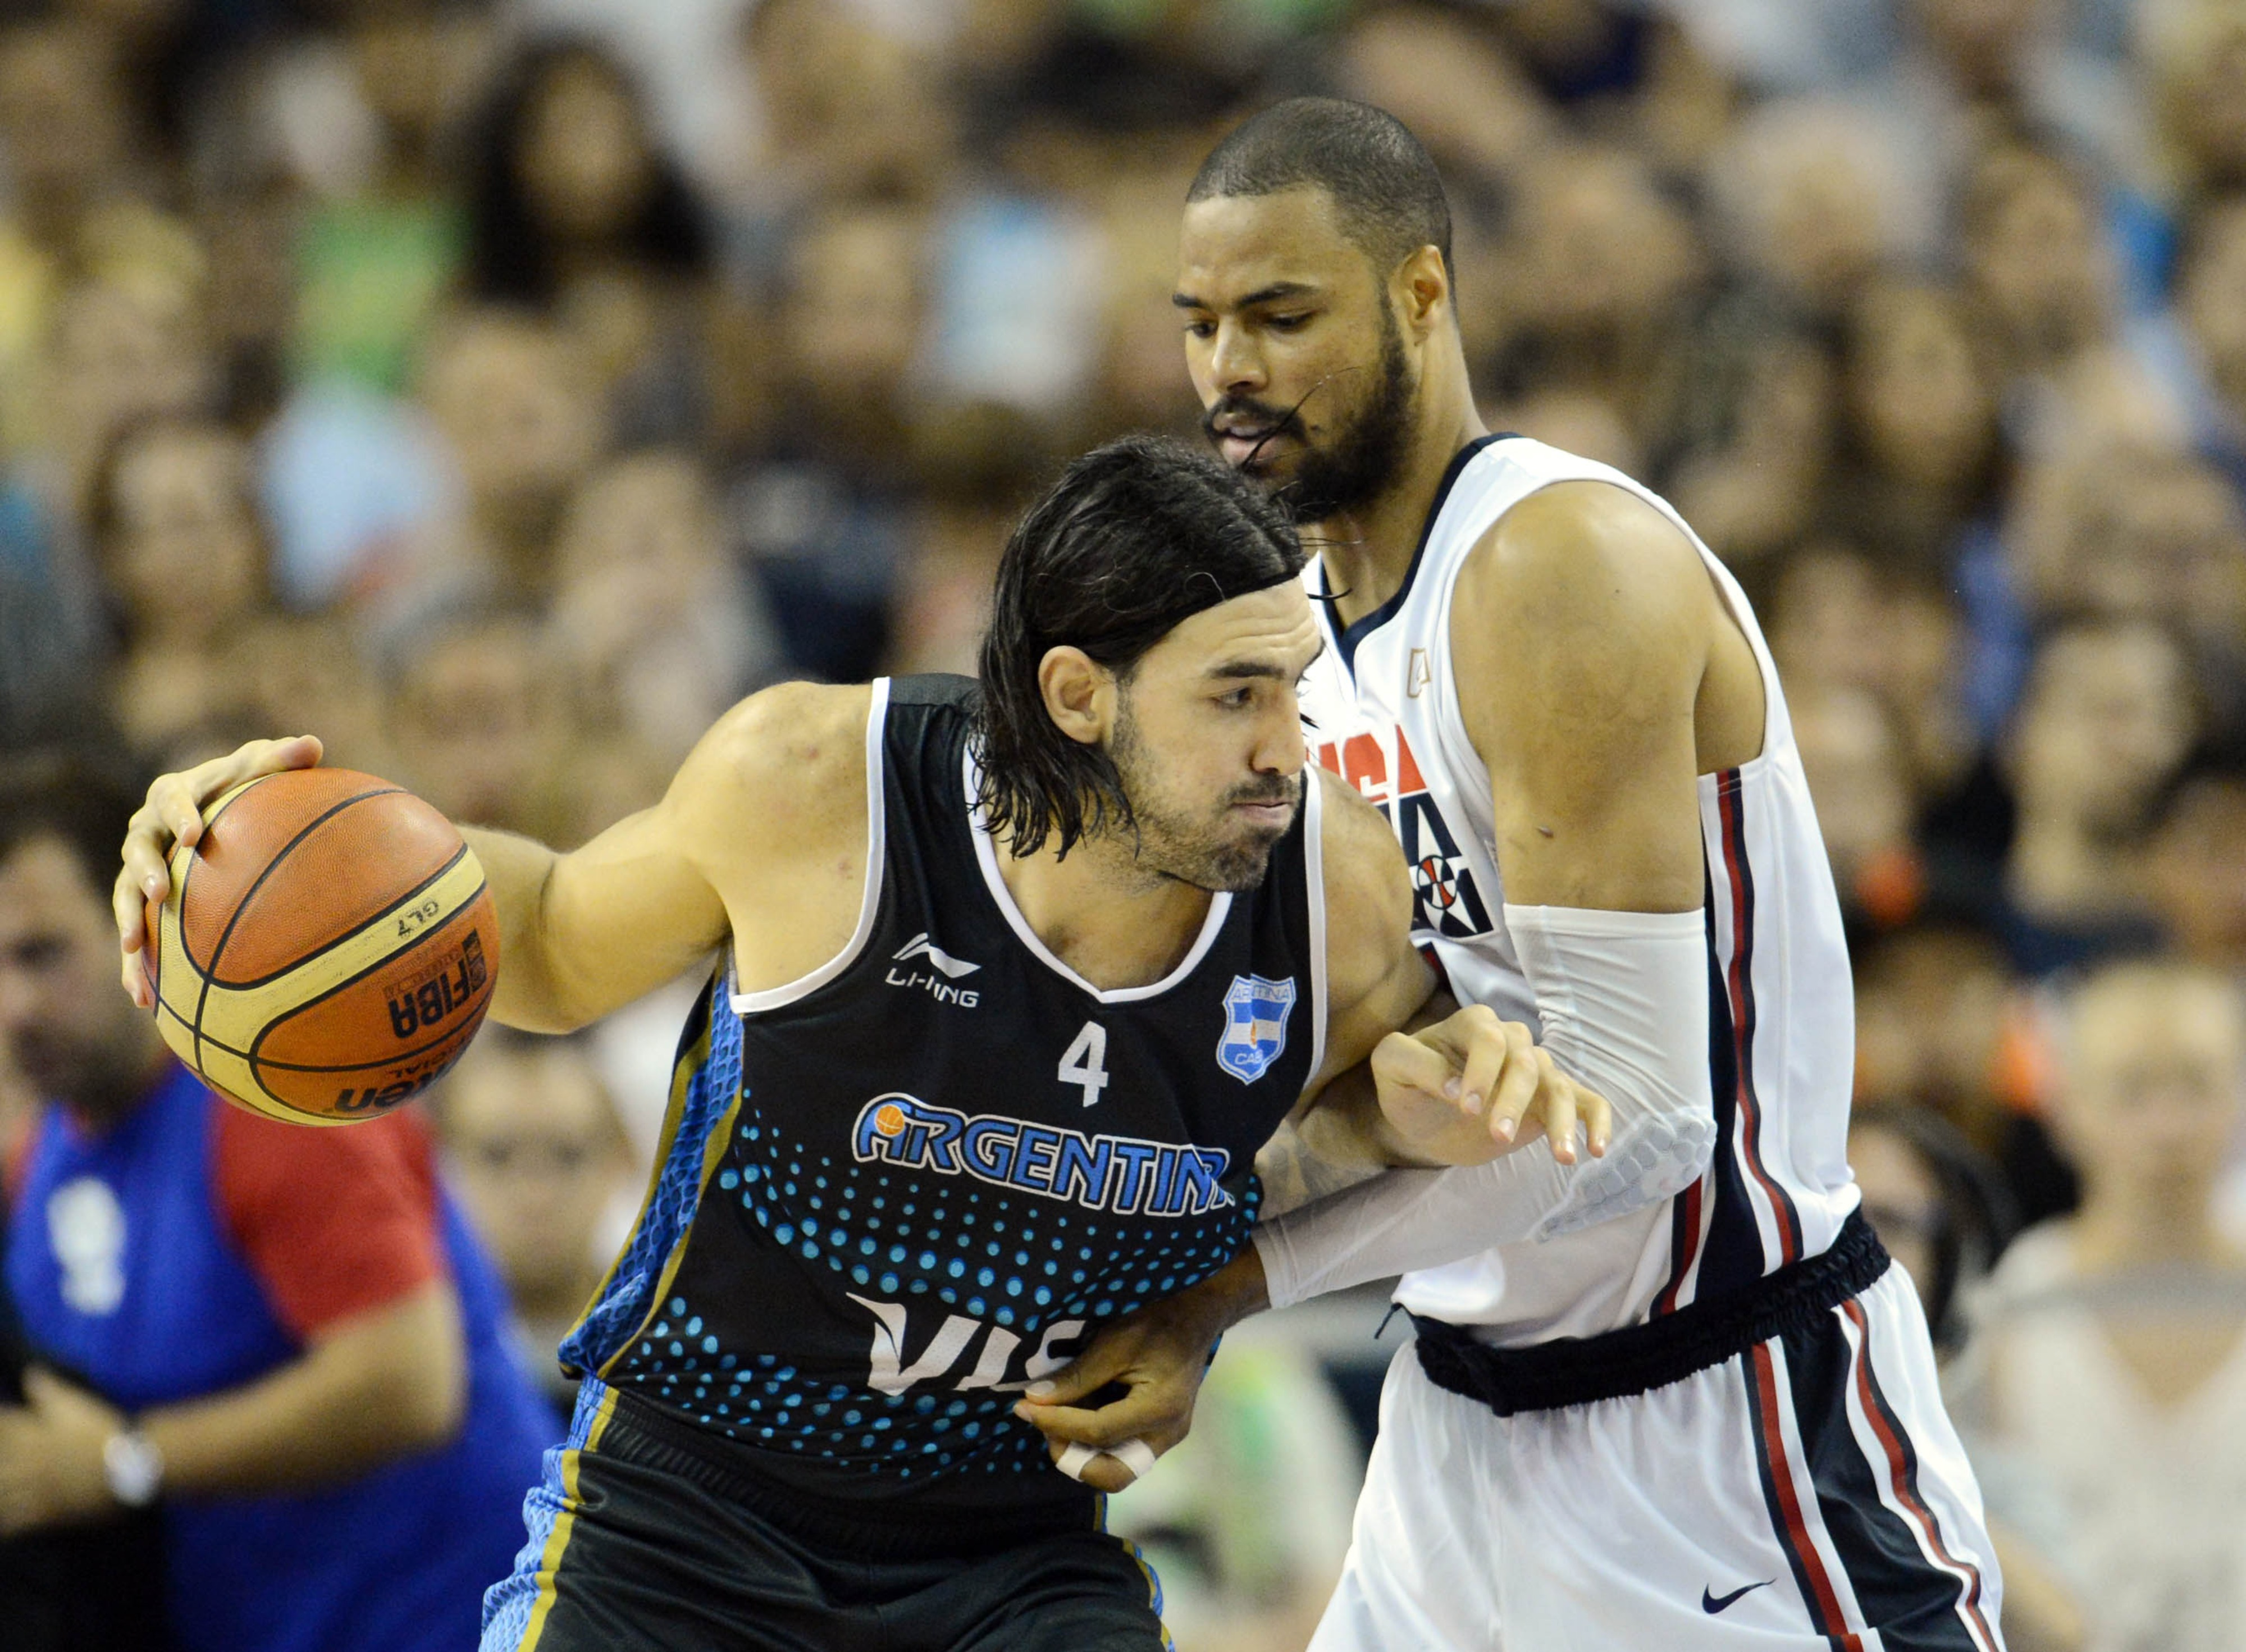 Luis Scola's post scoring will be one of the keys for the Argentine team Mandatory Credit: Jerry Lai-US PRESSWIRE